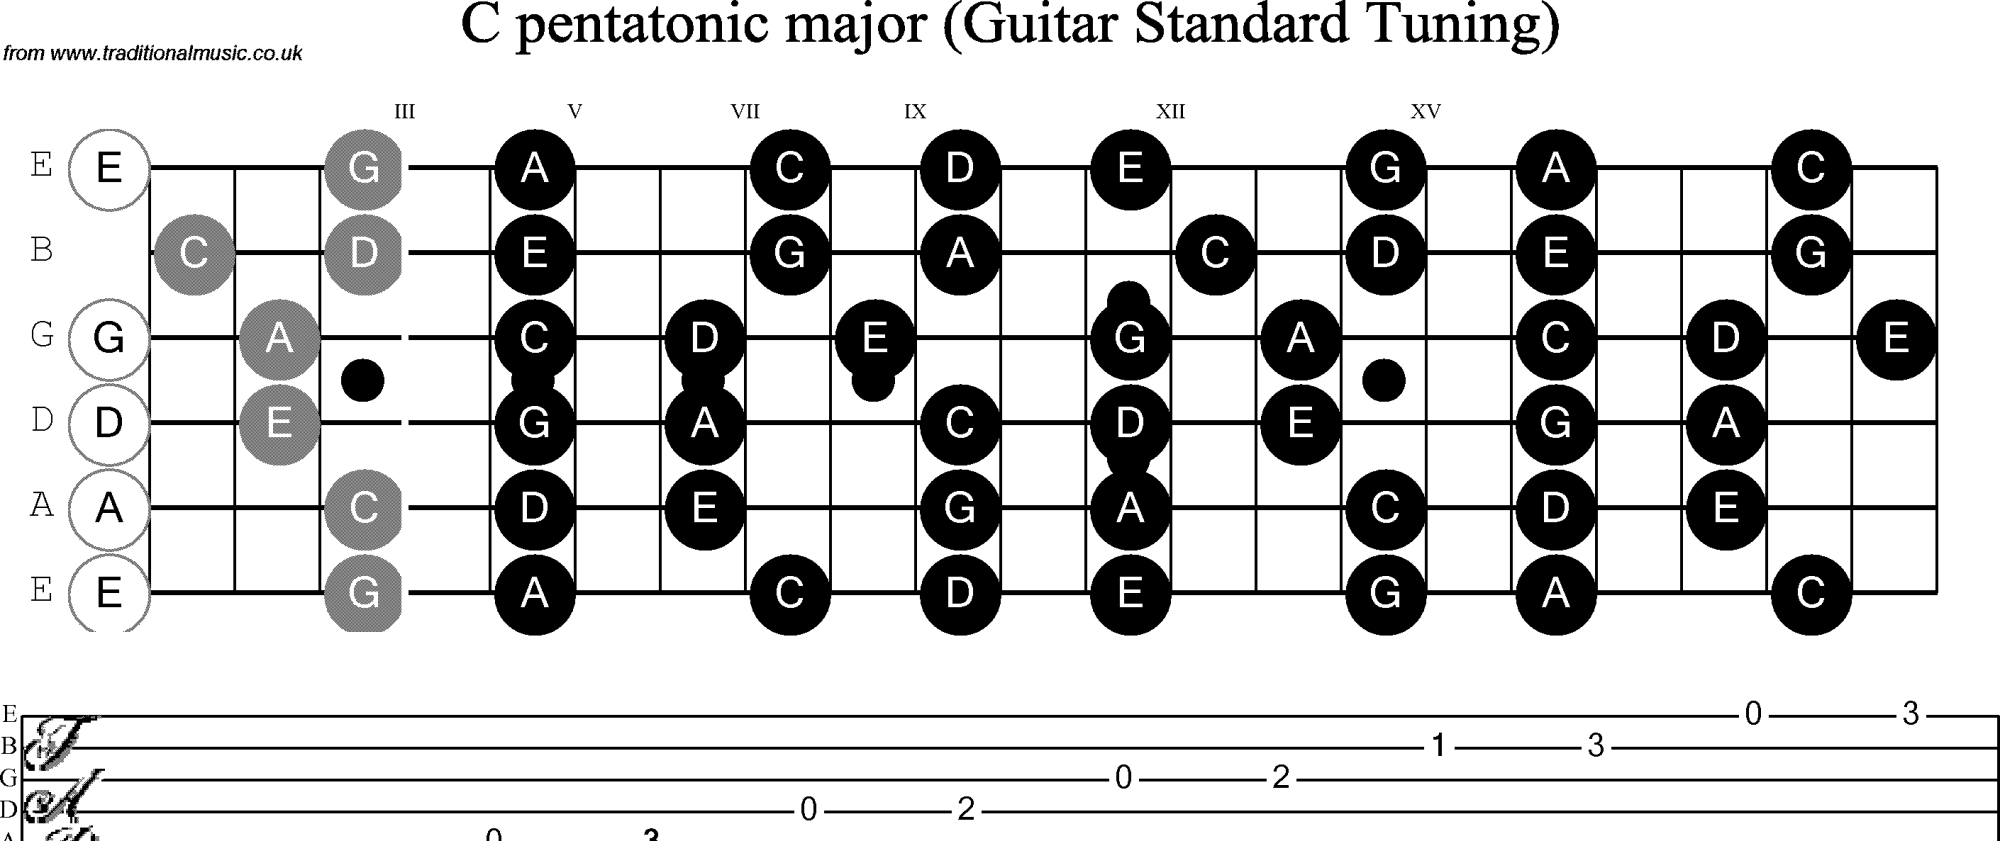 hight resolution of scale stave and neck diagram for guitar c pentatonic